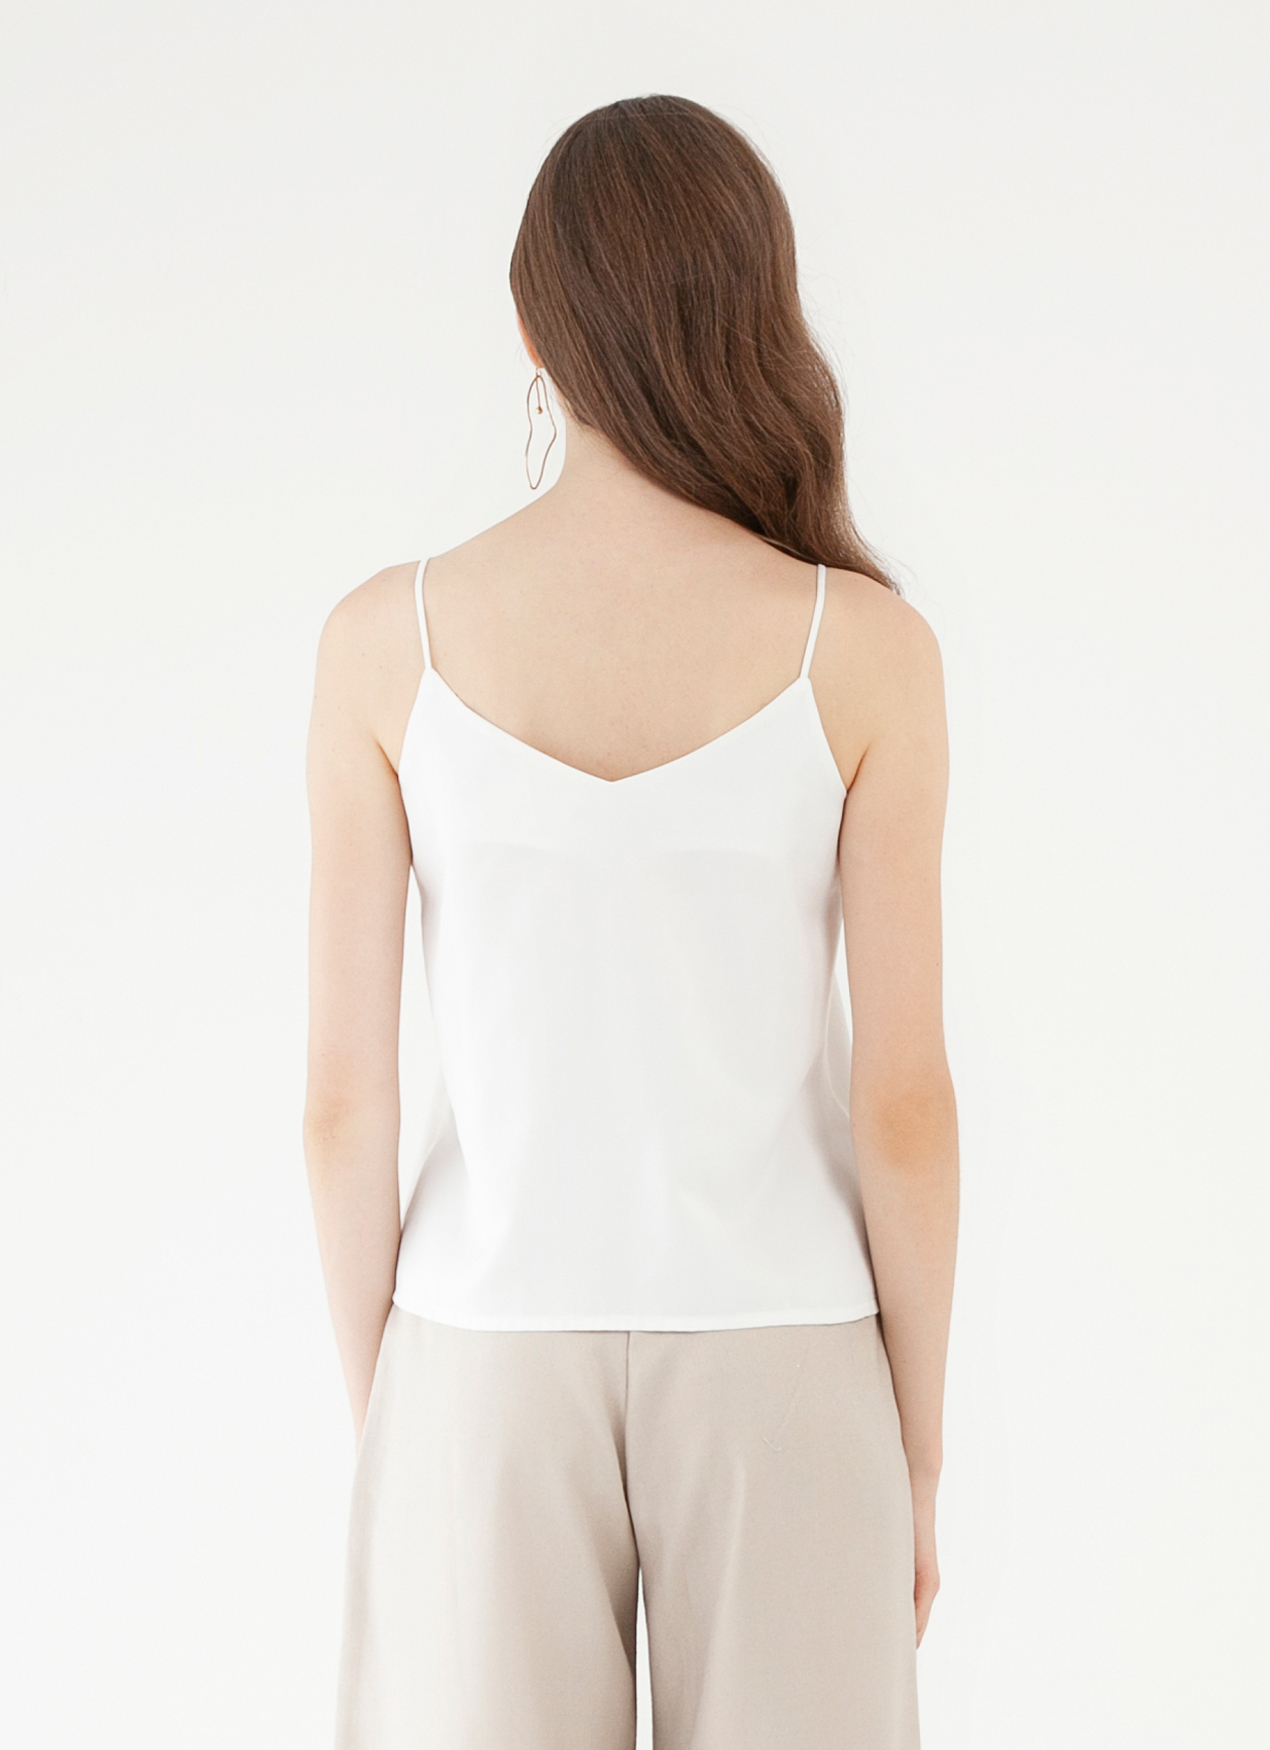 CLOTH INC Multi Strap Tank Top - White